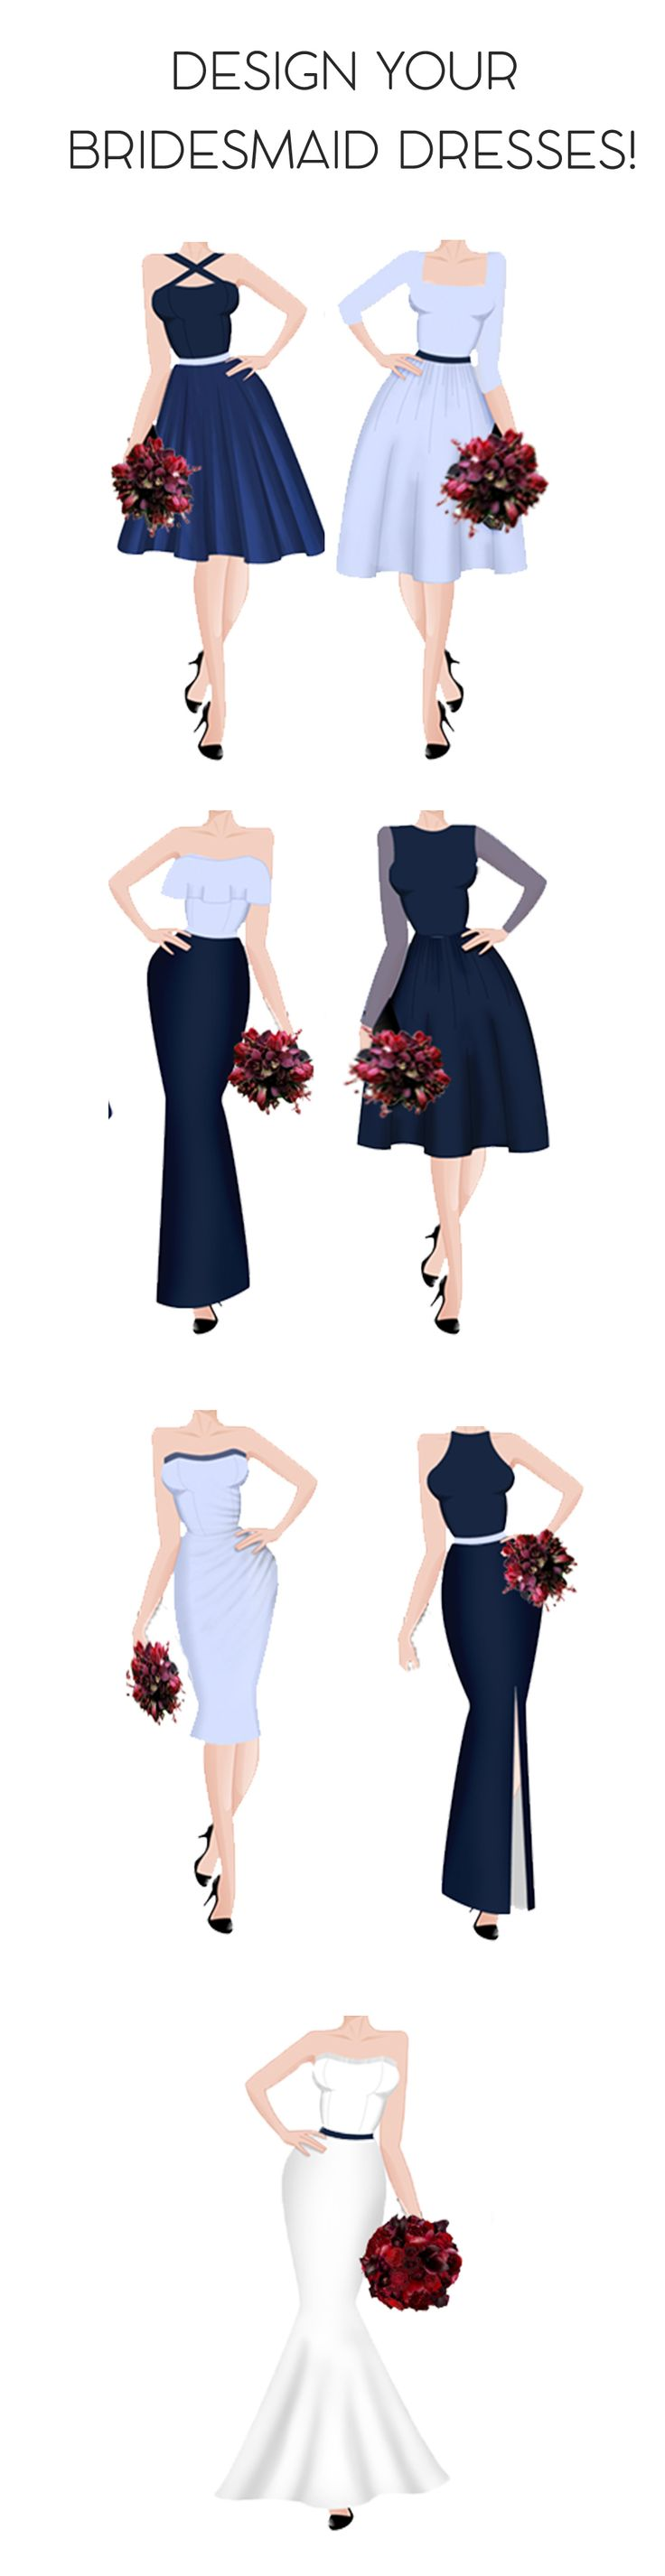 Mix and match bridesmaid designs online at Sui Generis. Custom made dresses to your size #style #bridesmaid #design #fashion #dress #diy #budget